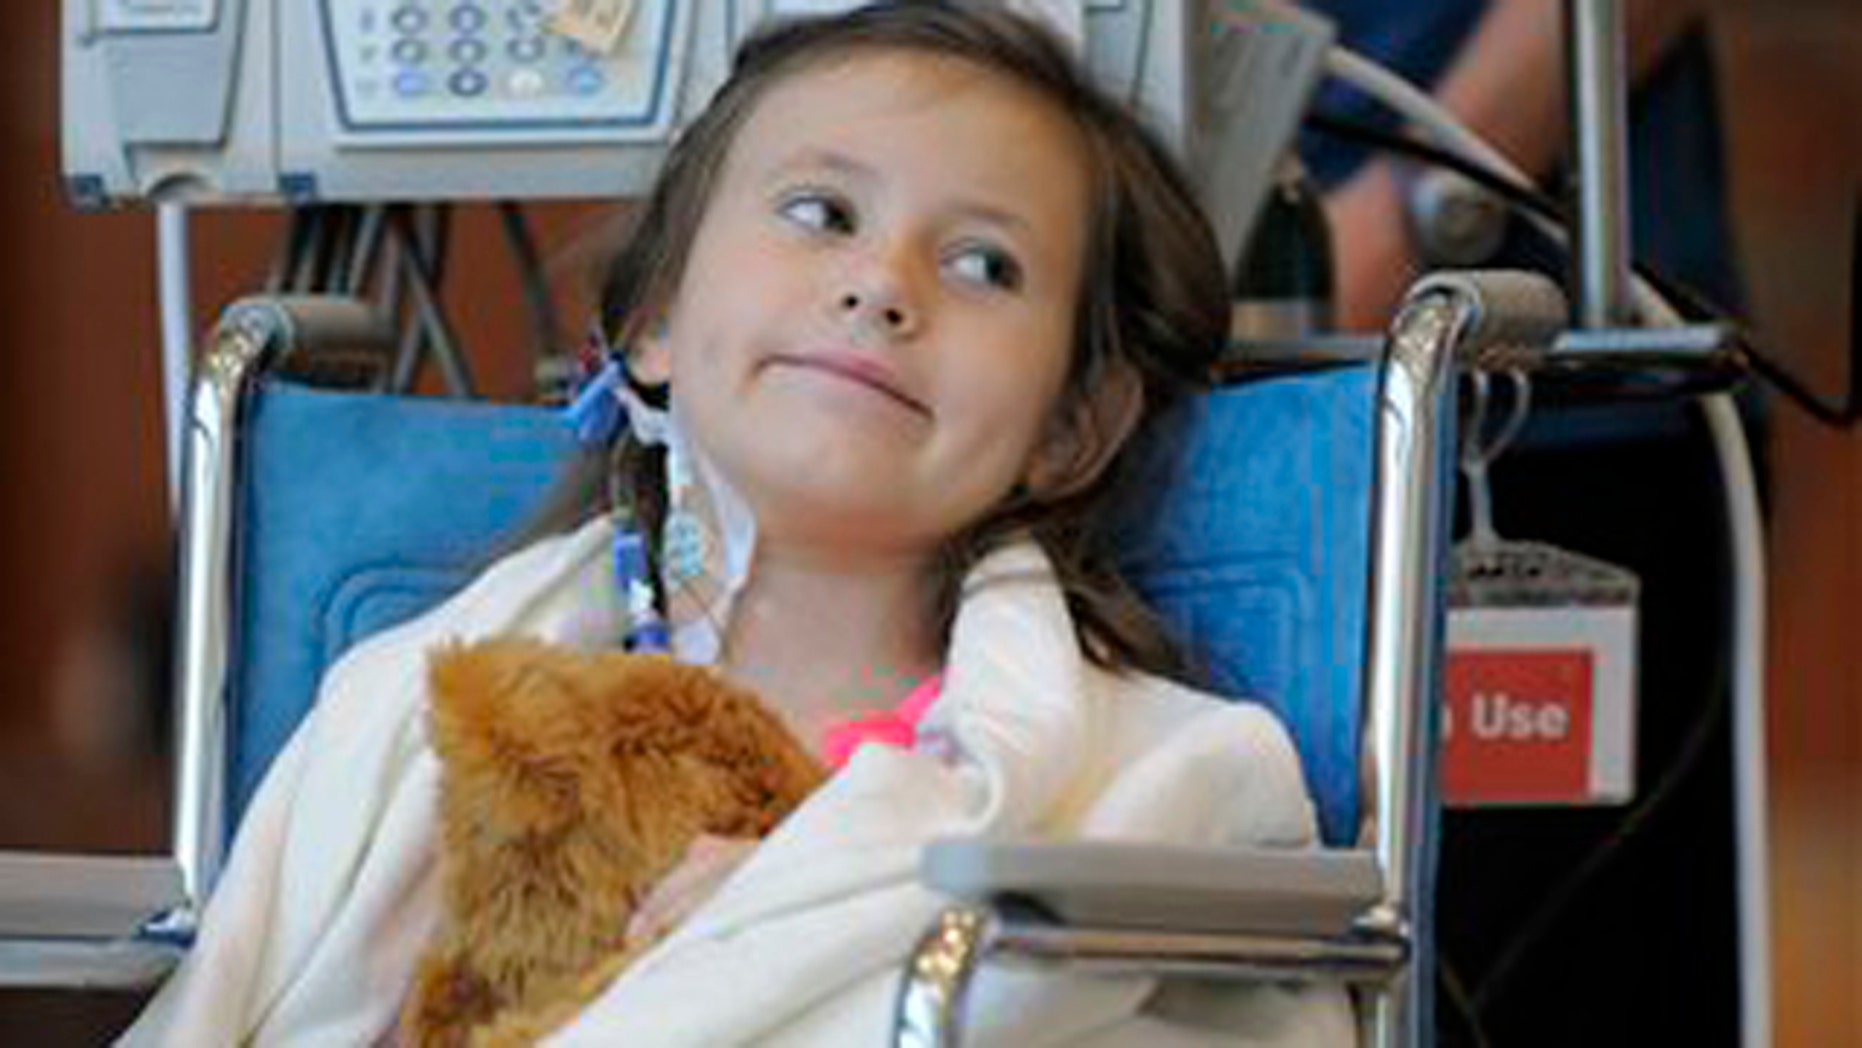 Sept. 5, 2012: Seven-year-old Sierra Jane Downing from Pagosa Springs, Colo., smiles during a news conference about her recovery from bubonic plague at the Rocky Mountain Hospital for Children at Presbyterian/St. Luke's.